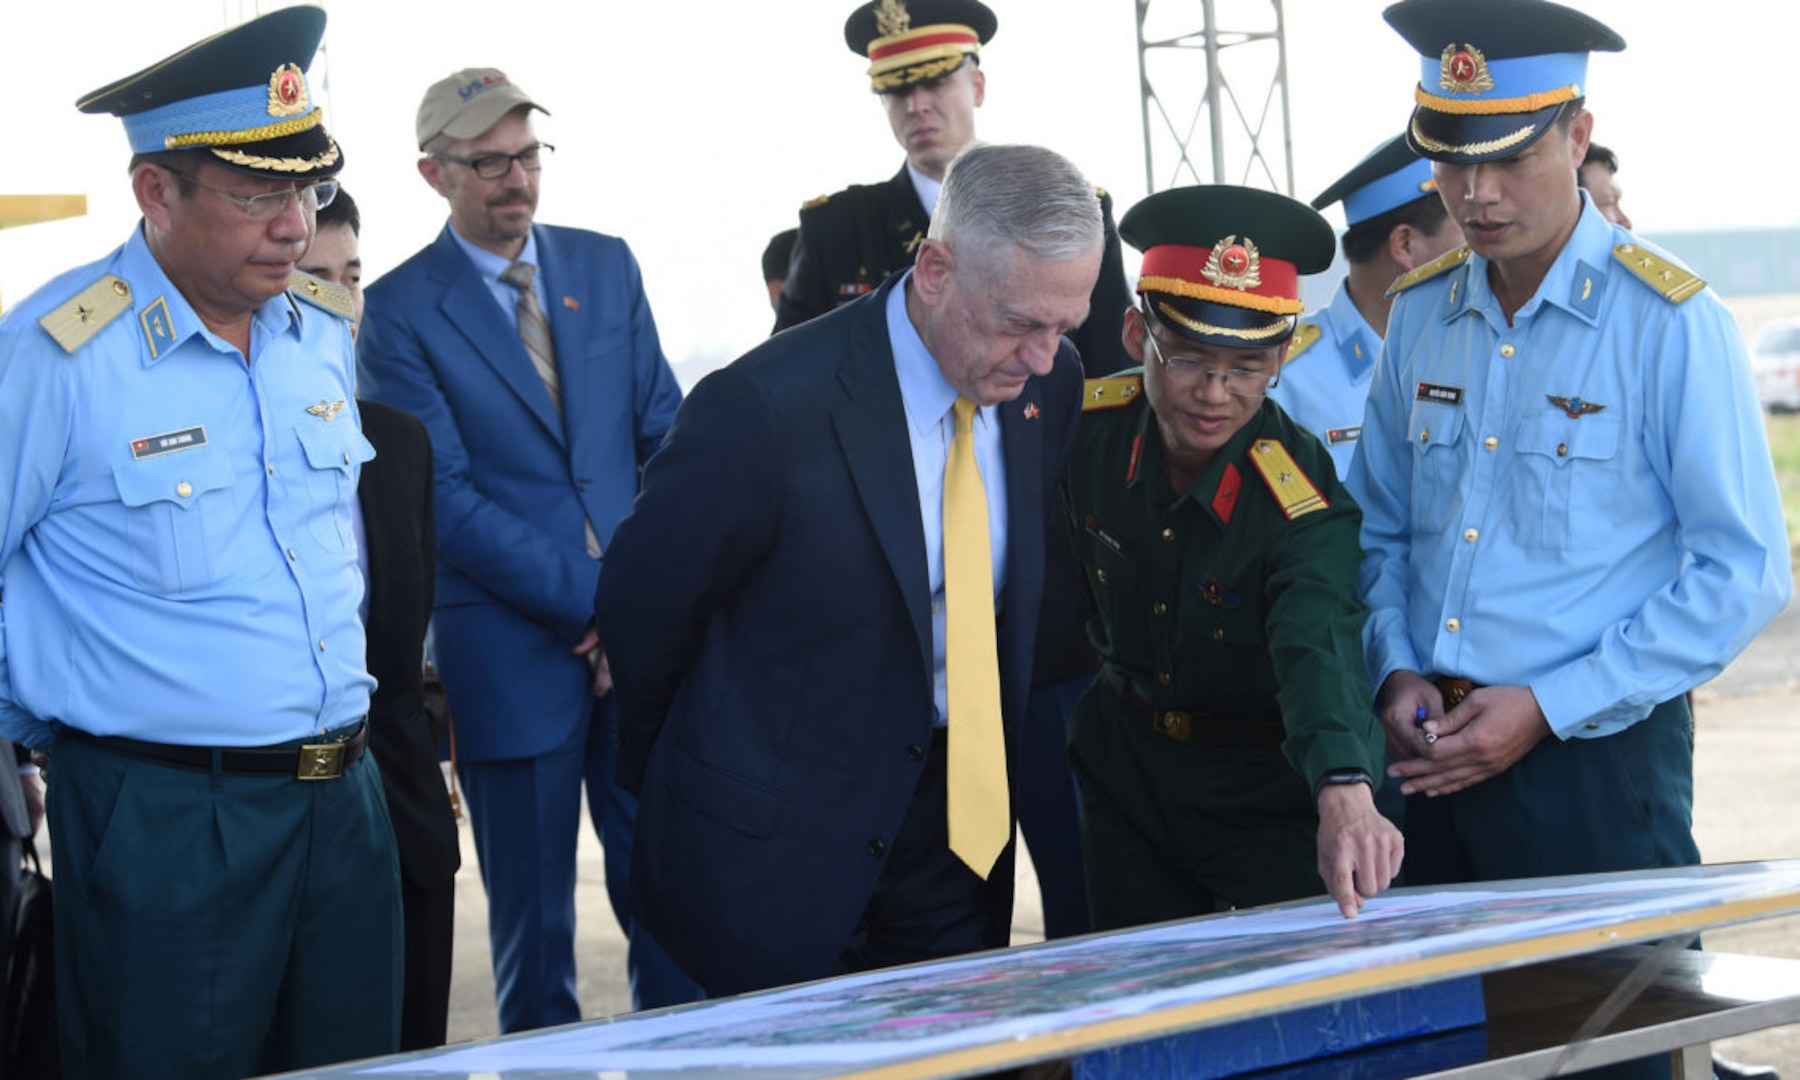 U.S. Secretary of Defense Makes Second Visit to Vietnam in 2018, Highlights Growing U.S.-Vietnam Partnership